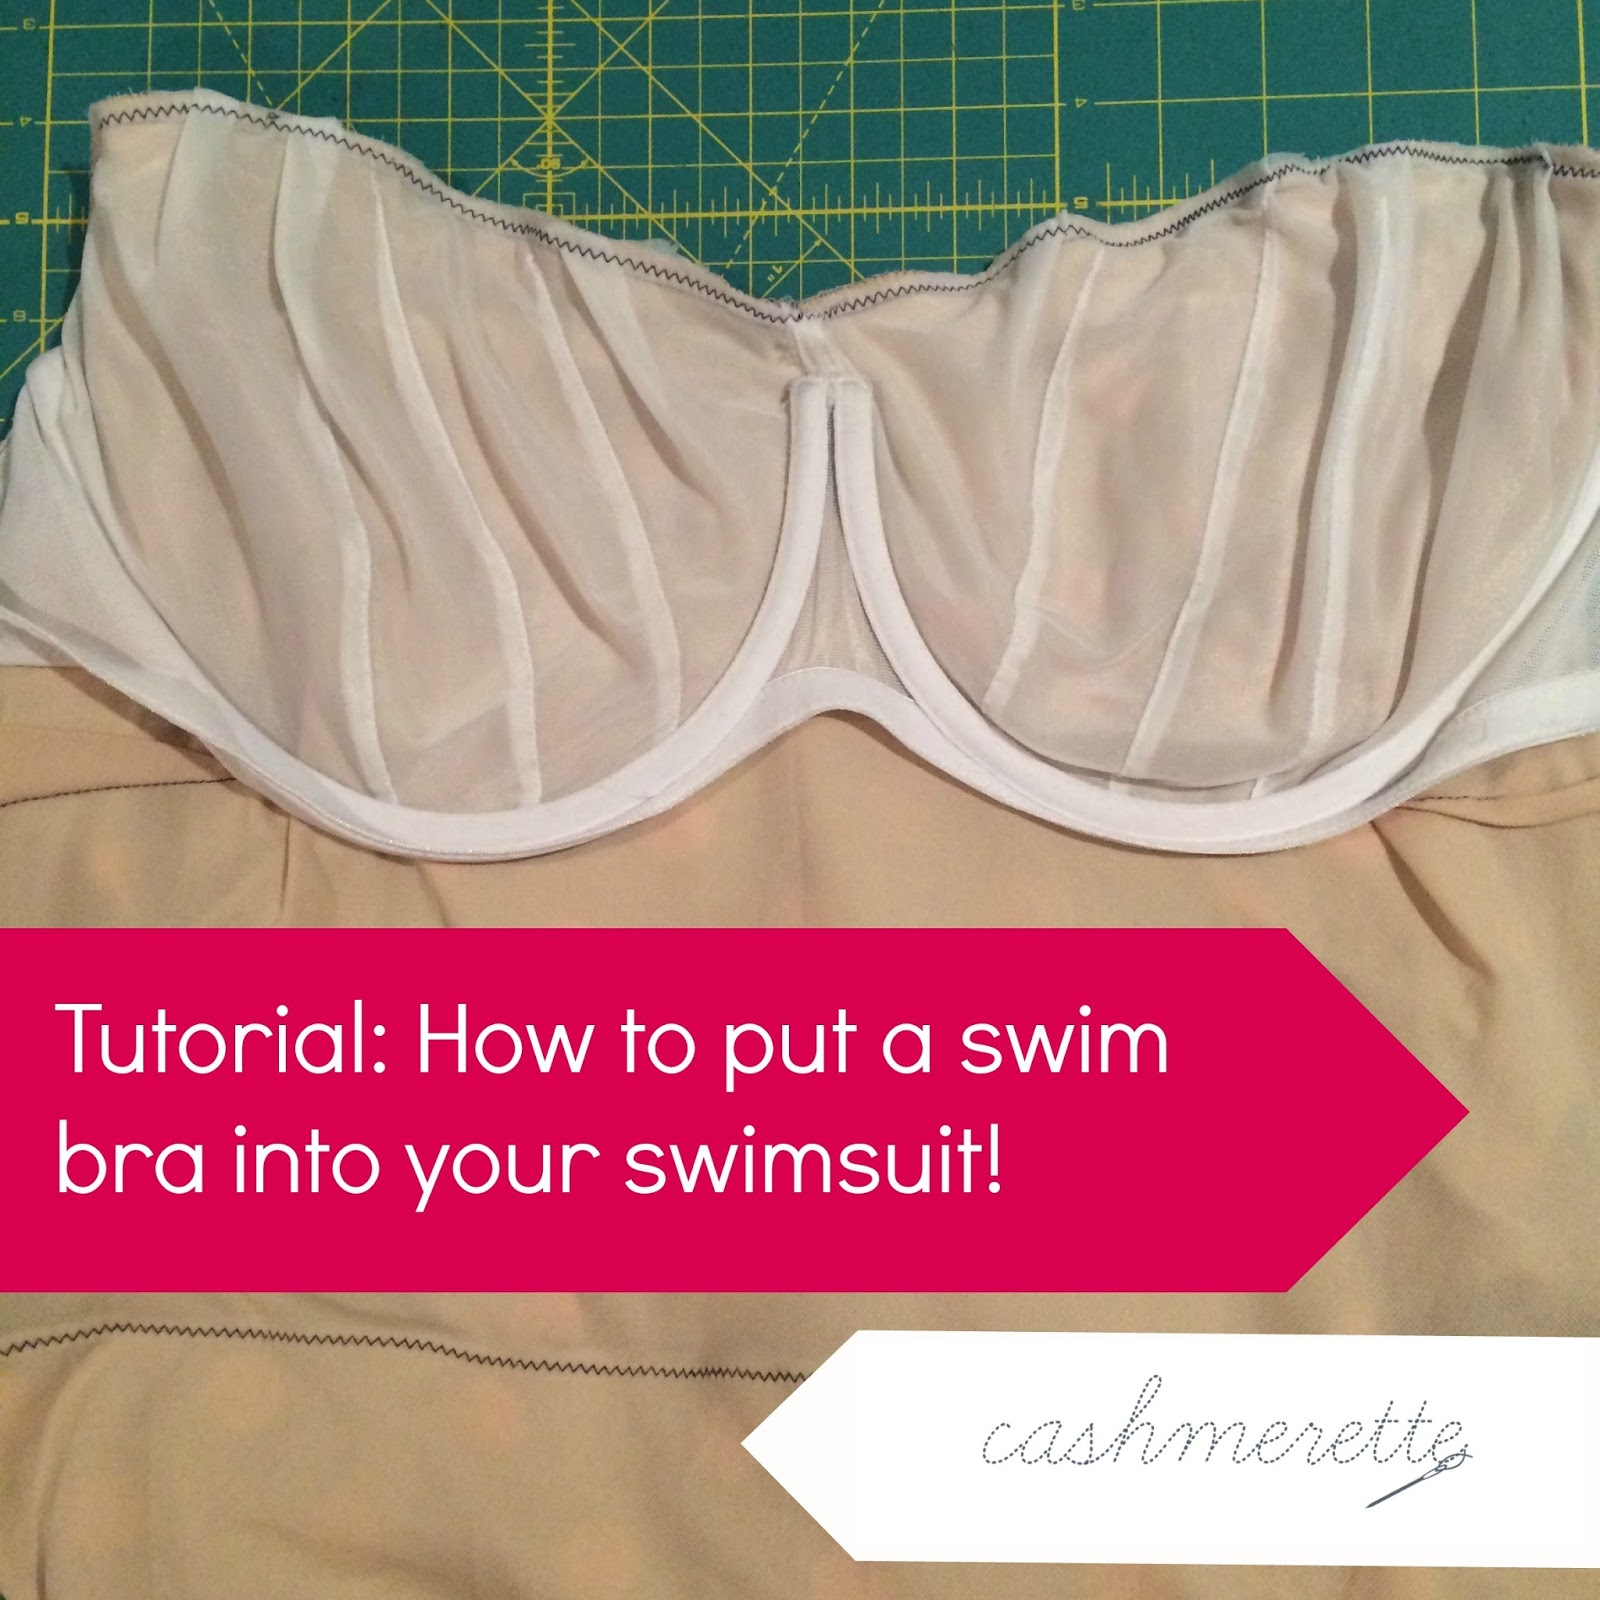 Mini tutorial: Putting a swim bra into a swimsuit ...